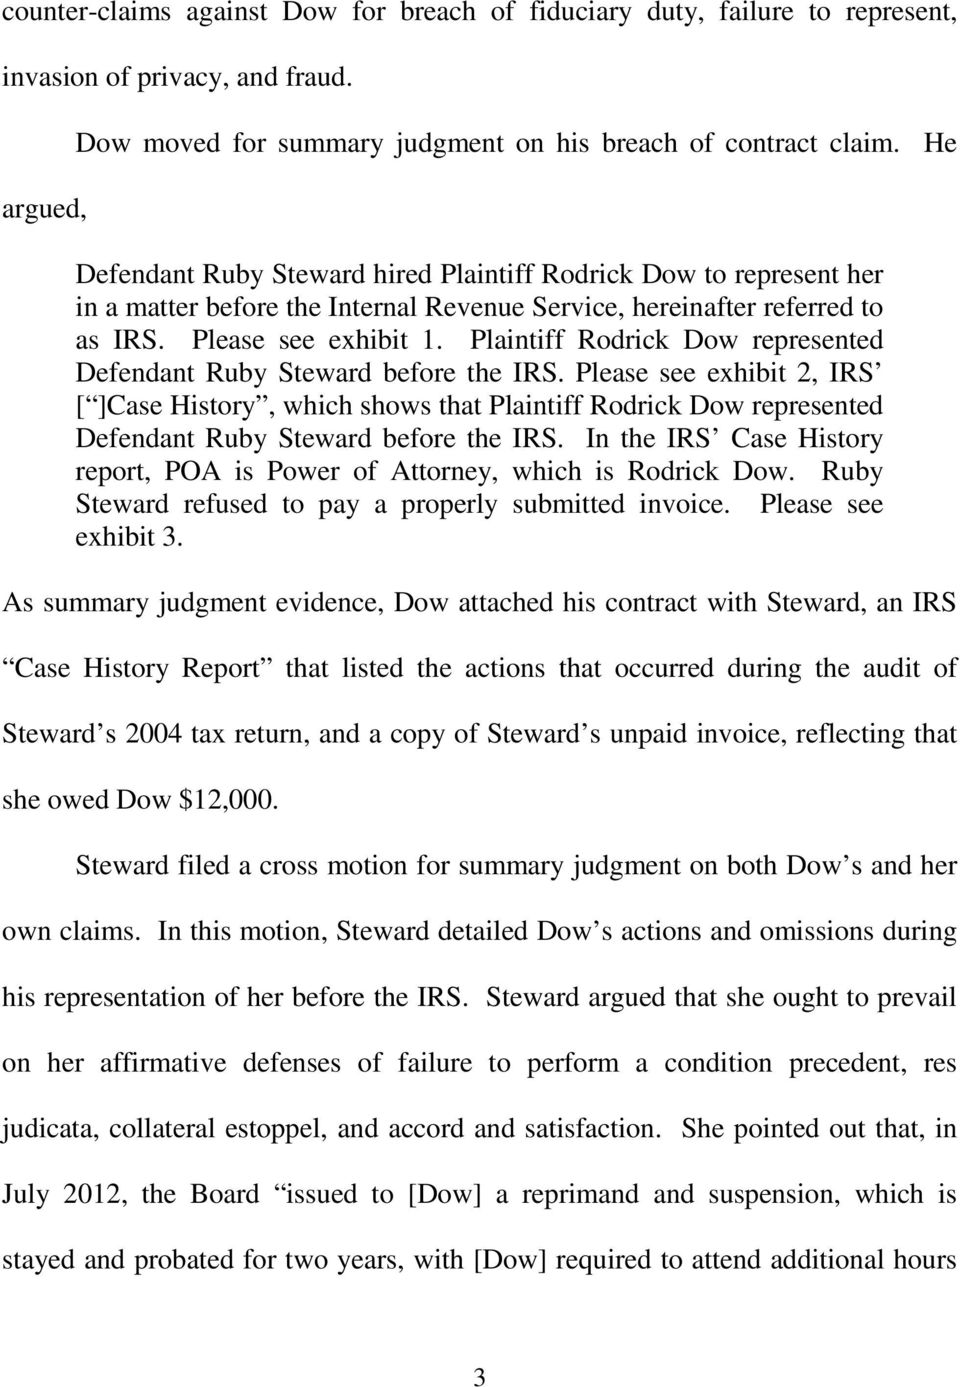 Plaintiff Rodrick Dow represented Defendant Ruby Steward before the IRS.